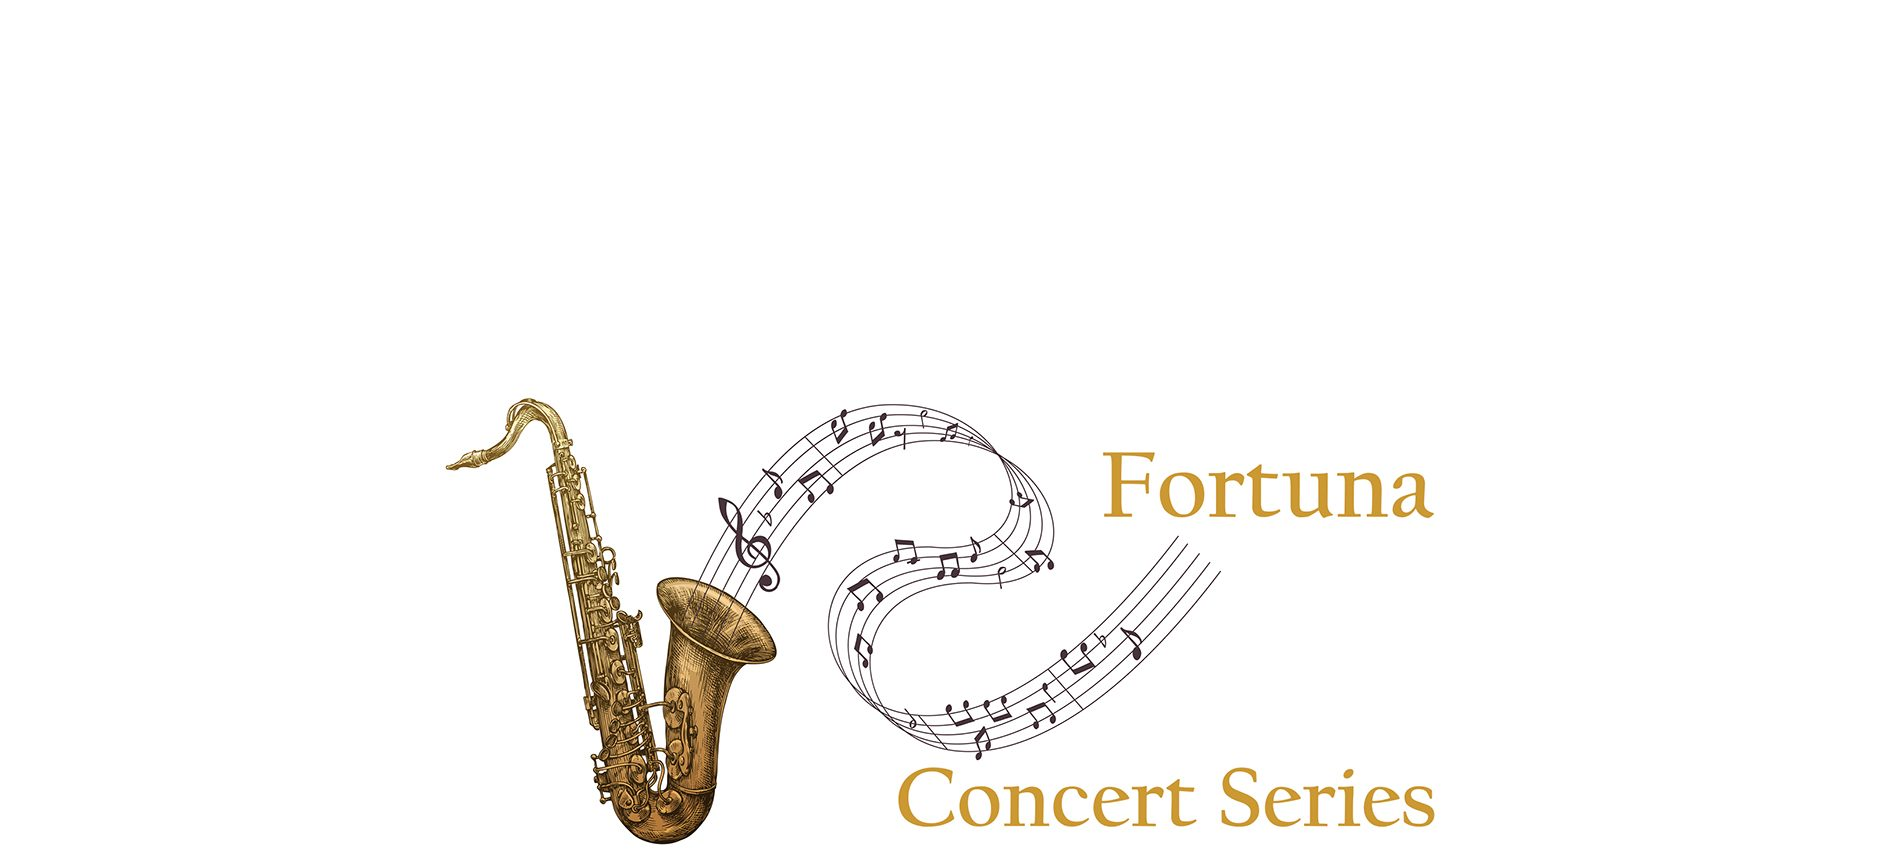 bronze saxophone with notes spilling out text: Fortuna Concert Series